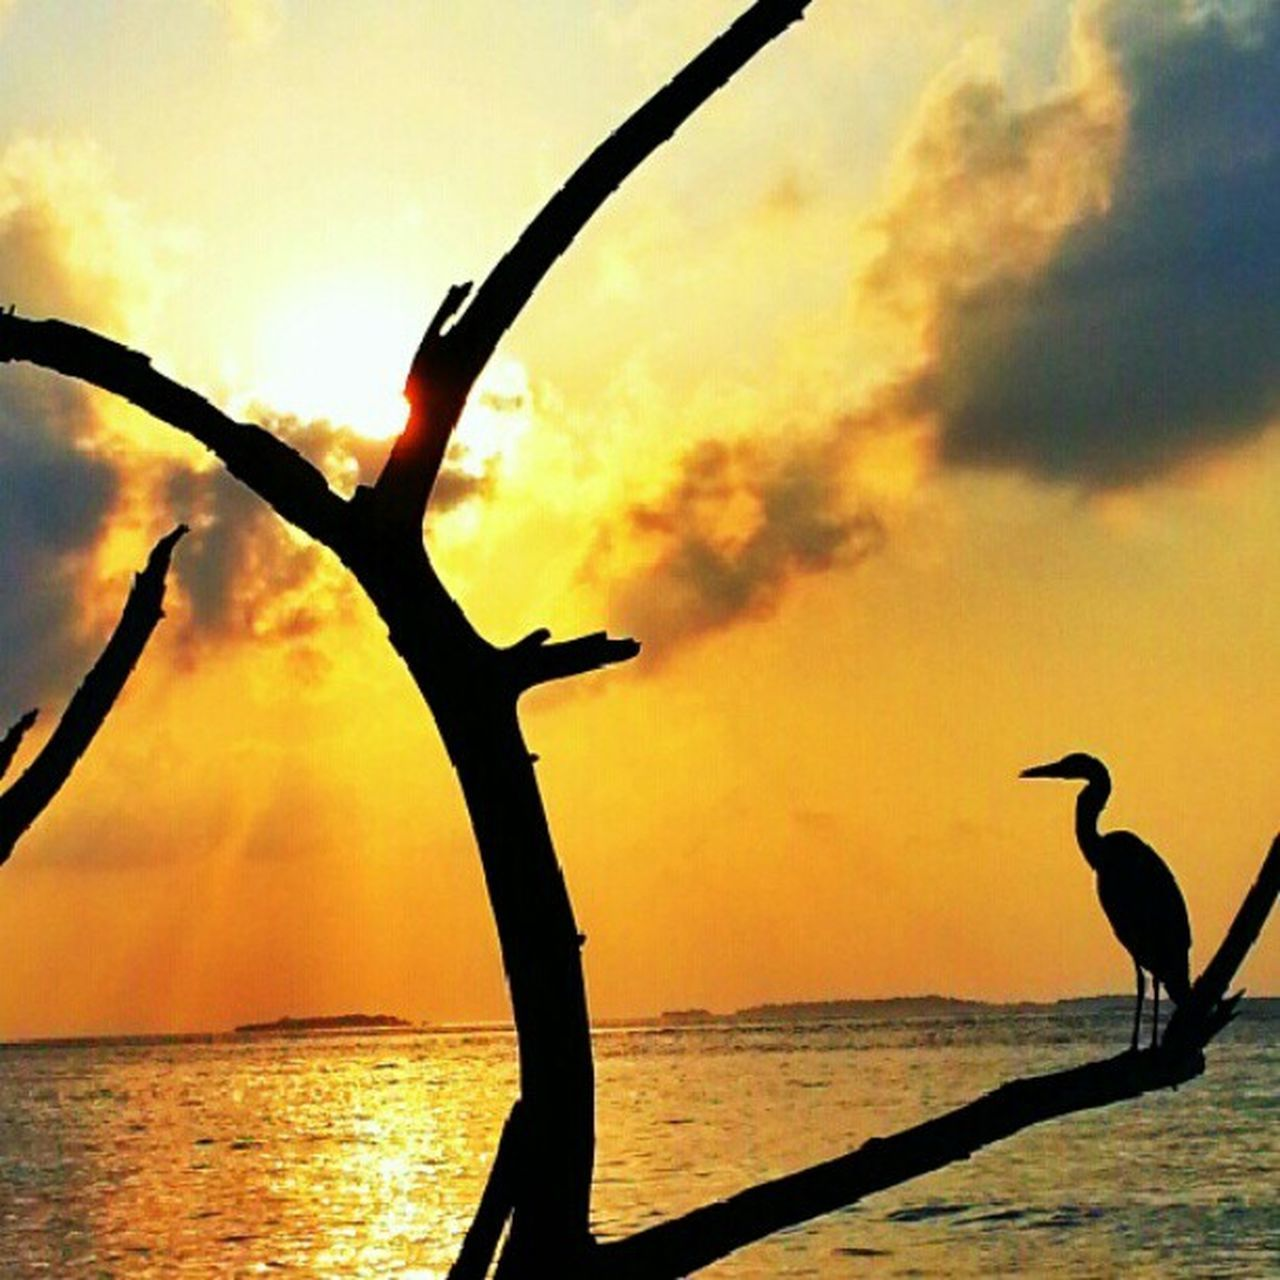 silhouette, sky, nature, sea, cloud - sky, outdoors, water, sunset, beauty in nature, no people, horizon over water, scenics, animals in the wild, animal themes, day, bird